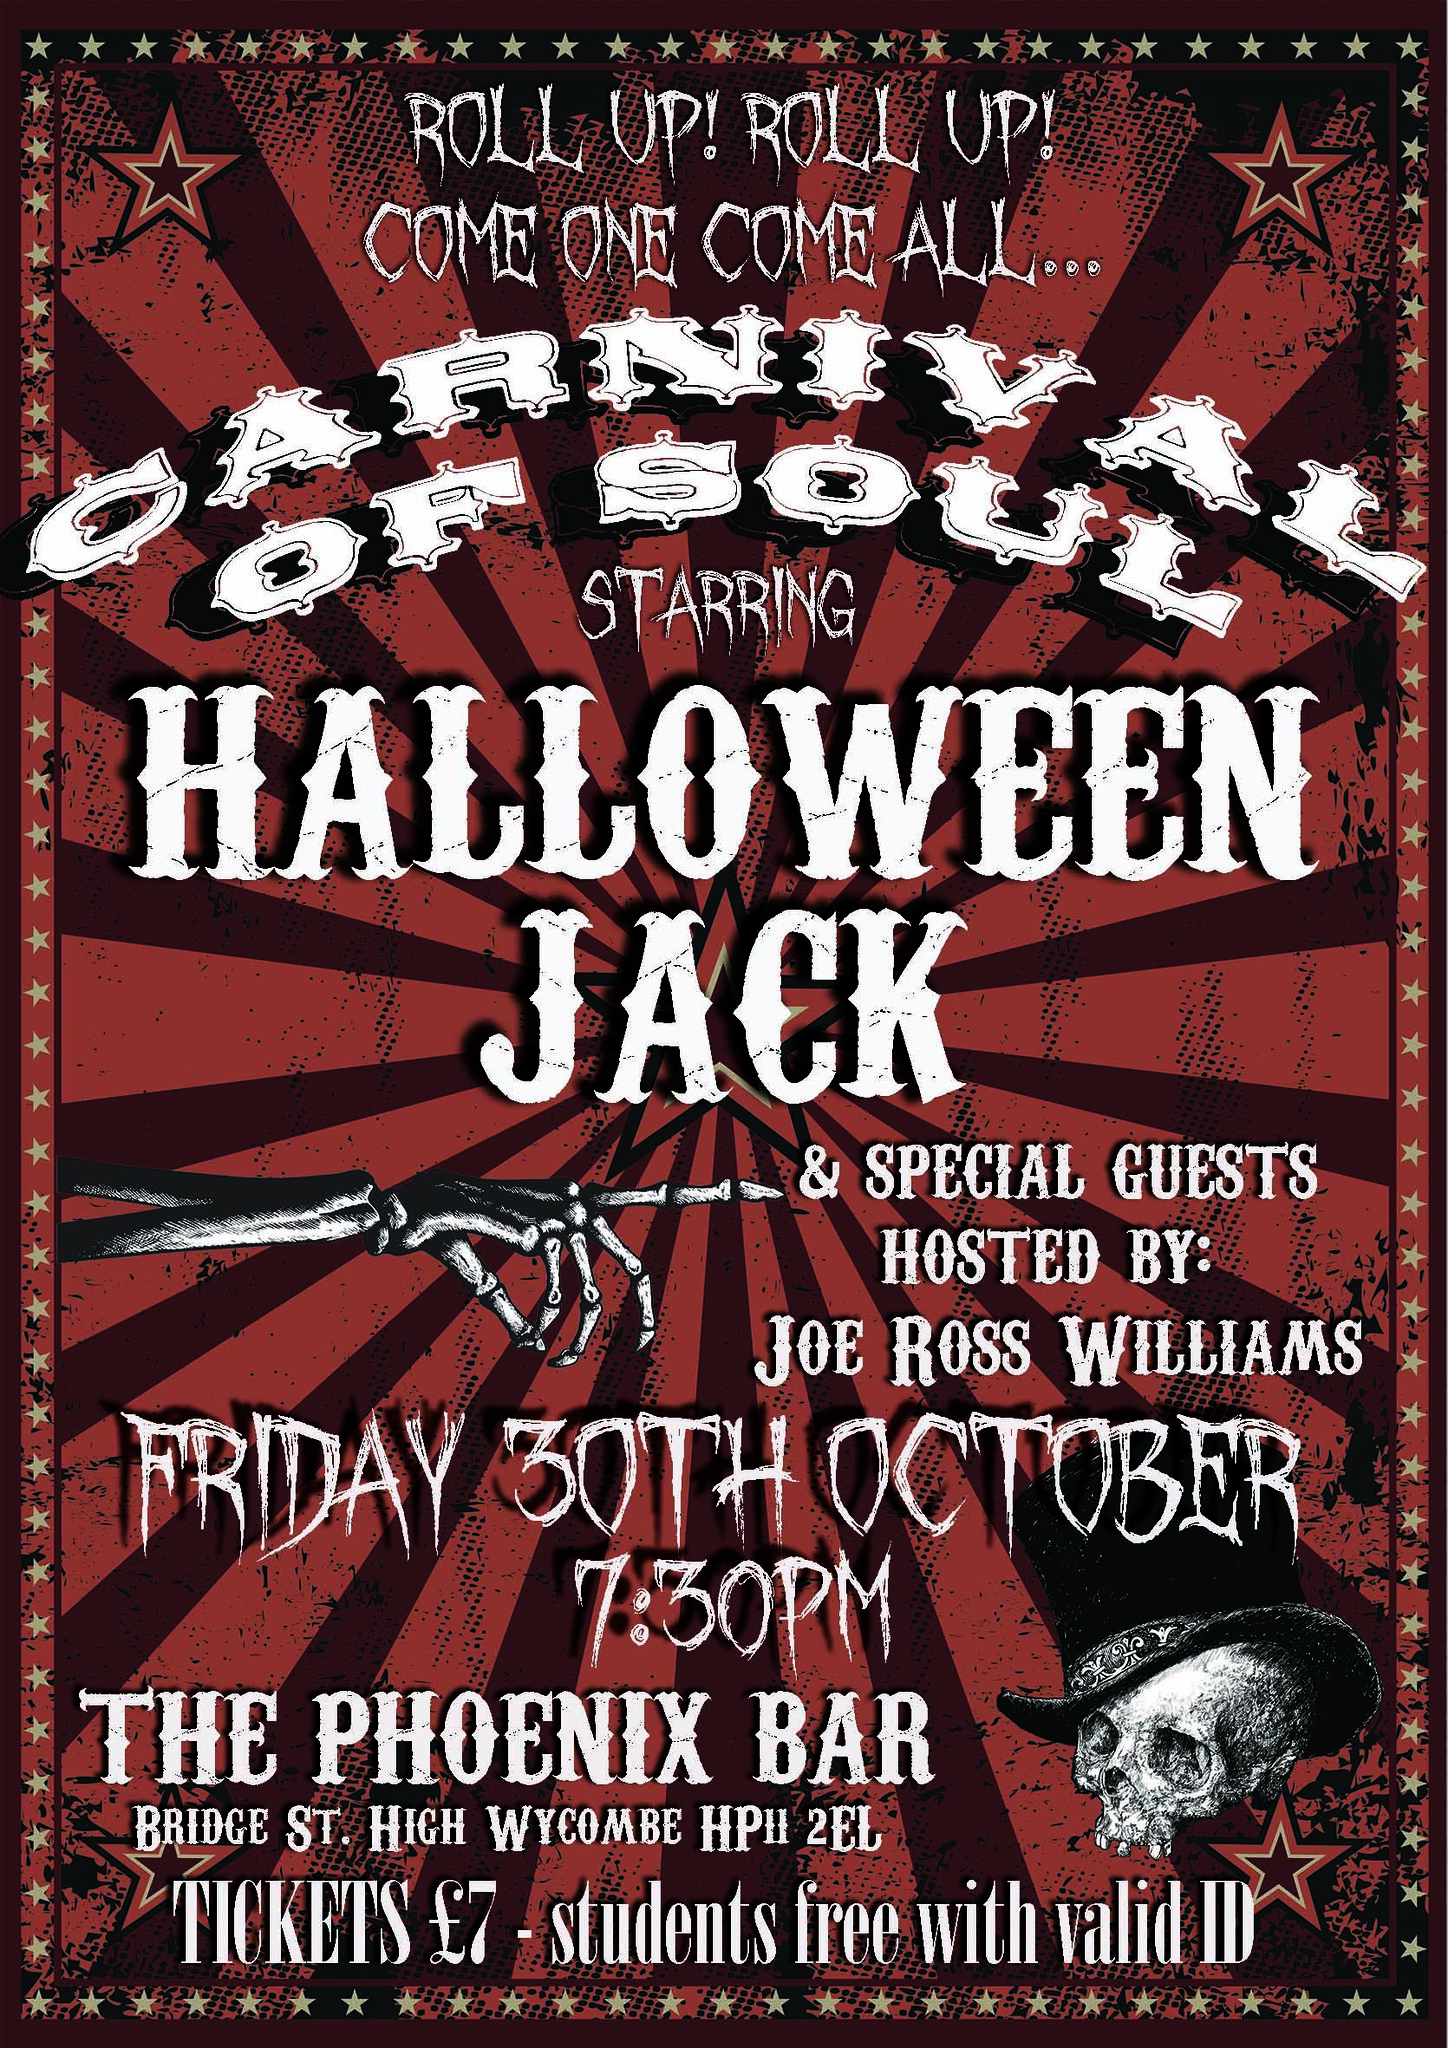 Small Halloween Jack 30th October